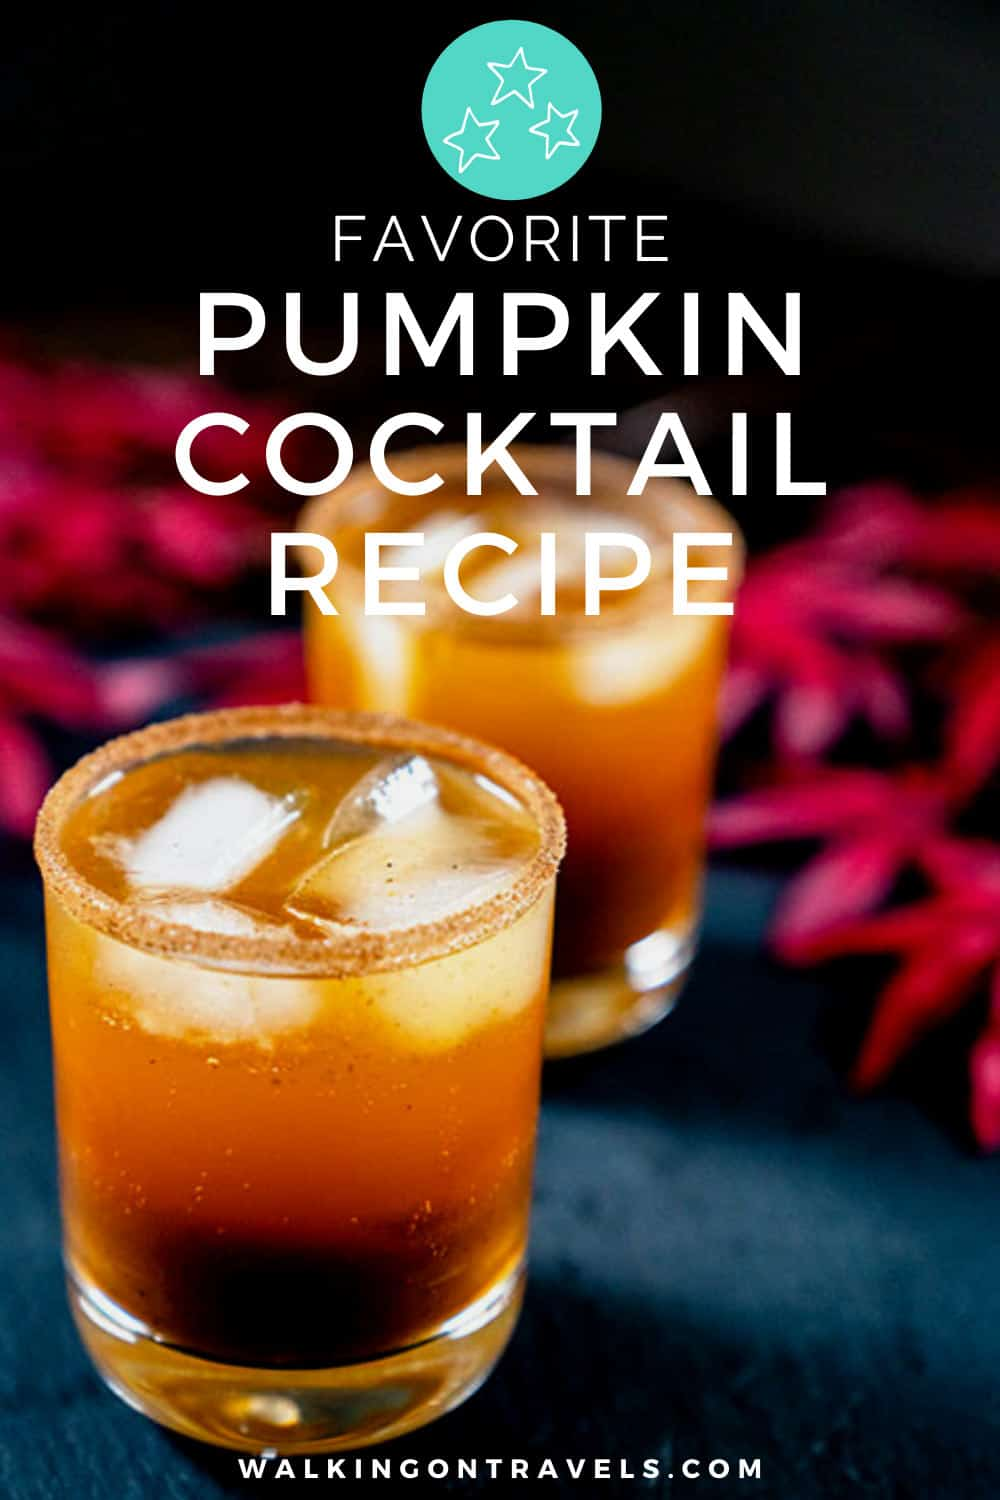 Pumpkin Cocktail recipe